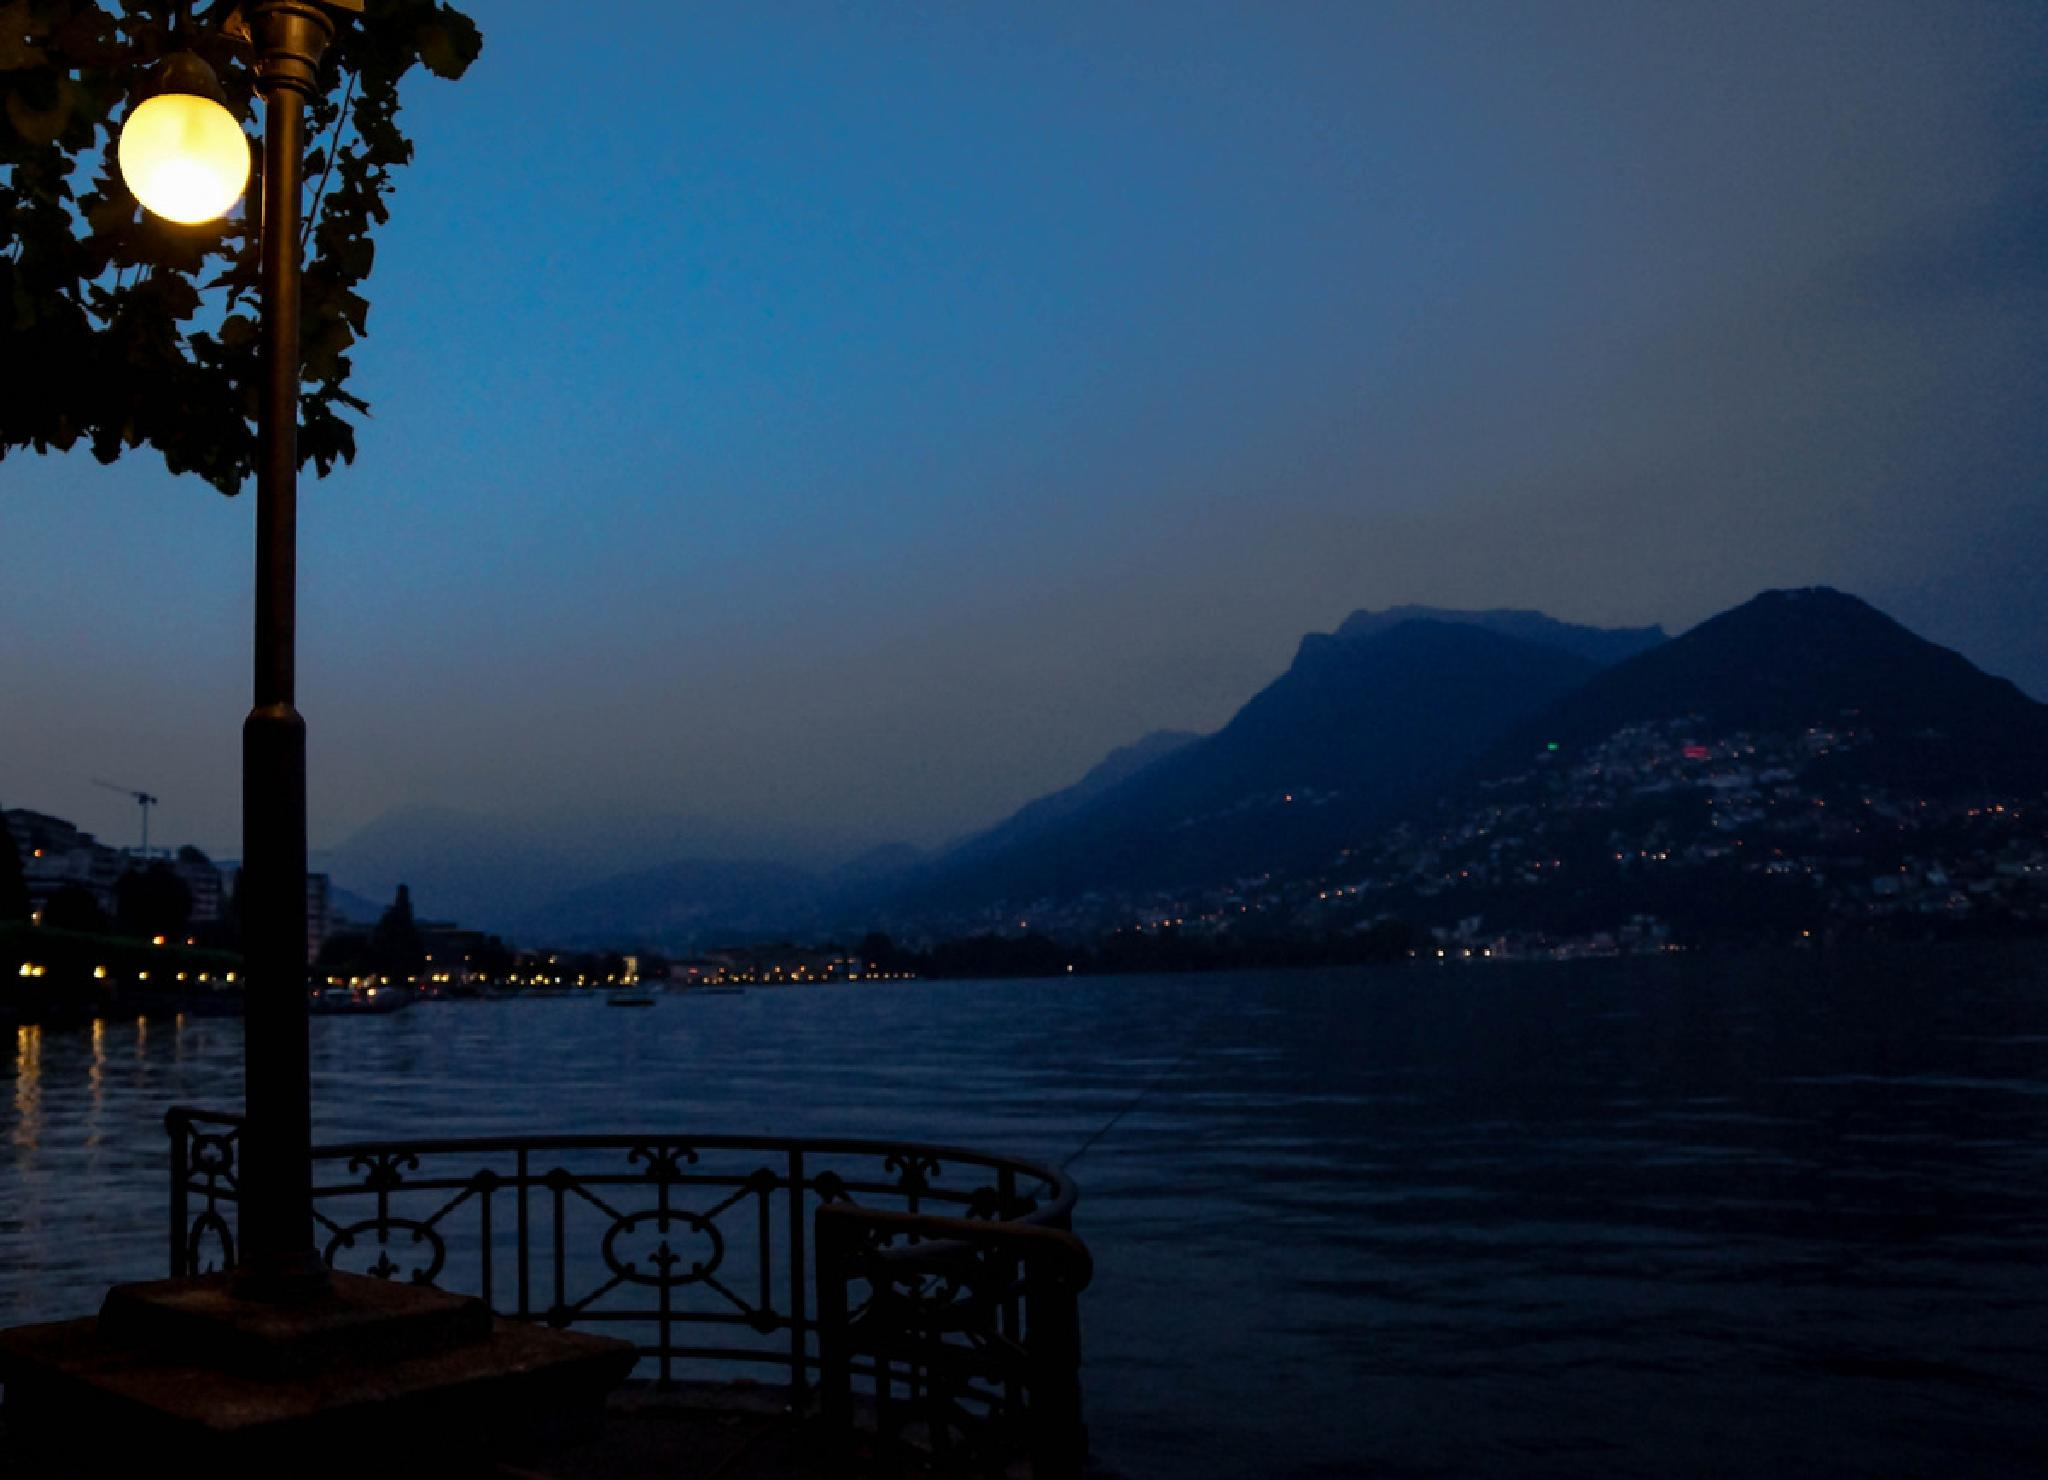 Night in Lugano by Jane.lindbladh